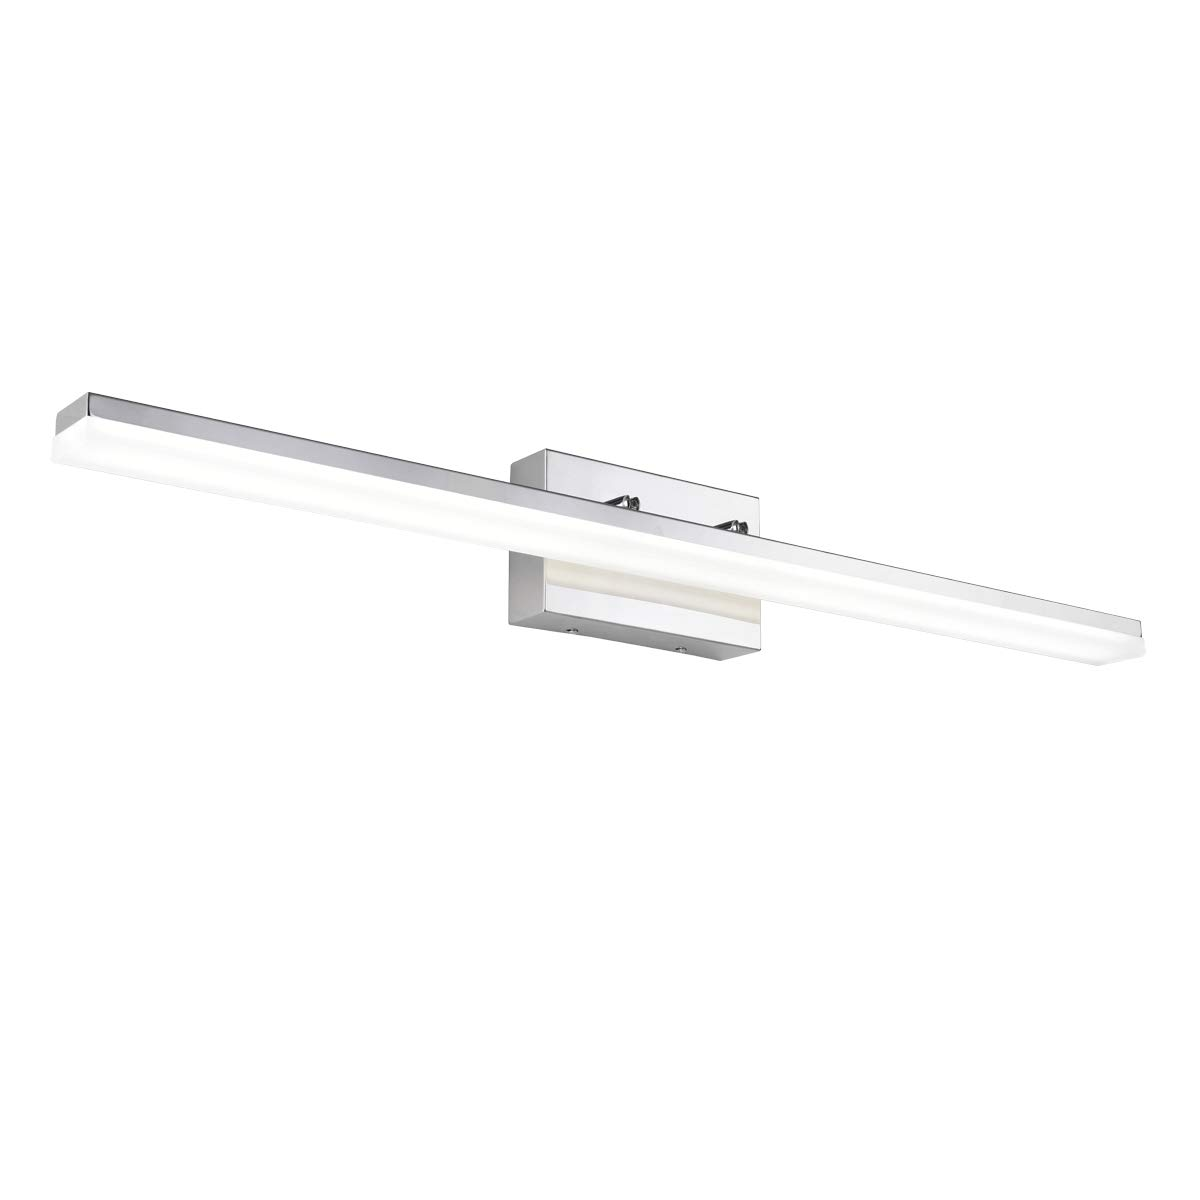 mirrea 36in Modern LED Vanity Light for Bathroom Lighting Dimmable 36w Cold White 5000K by mirrea (Image #1)